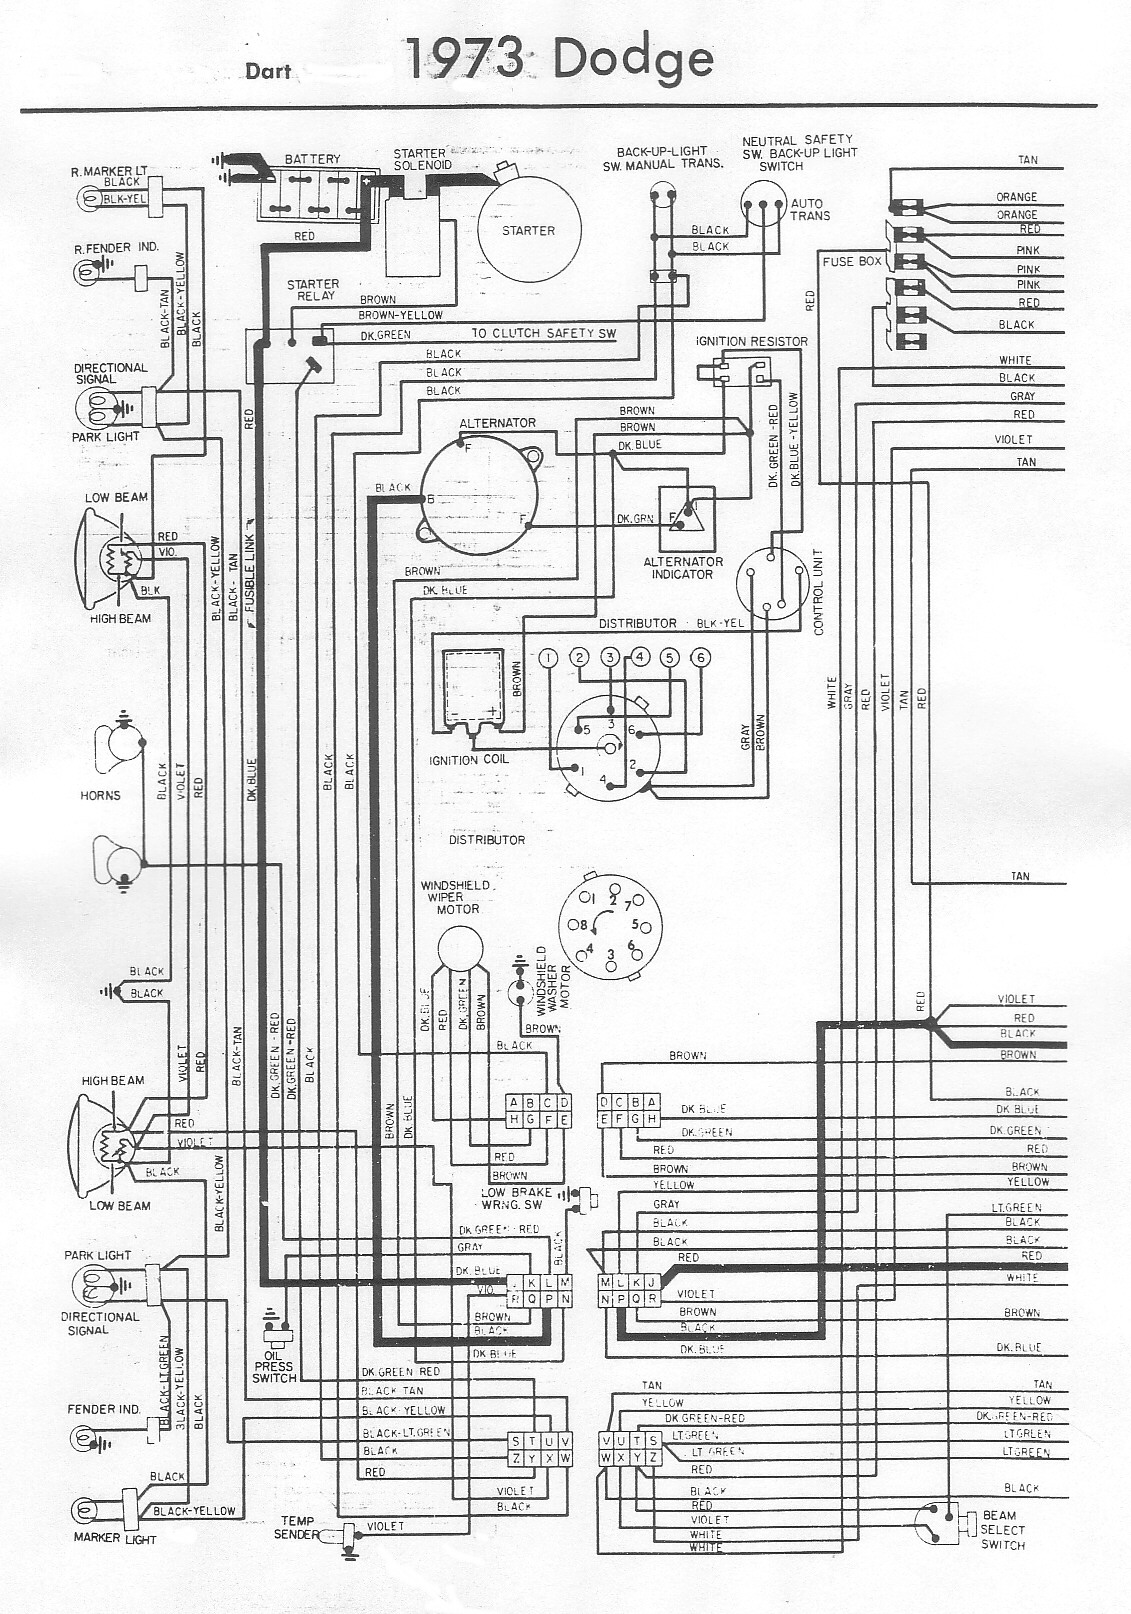 1975 dodge valiant wiring diagram schematic schema wiring diagram Basic Electrical Schematic Diagrams 1975 dodge valiant wiring diagram schematic wiring diagram air conditioner wiring diagrams 1975 dodge valiant wiring diagram schematic